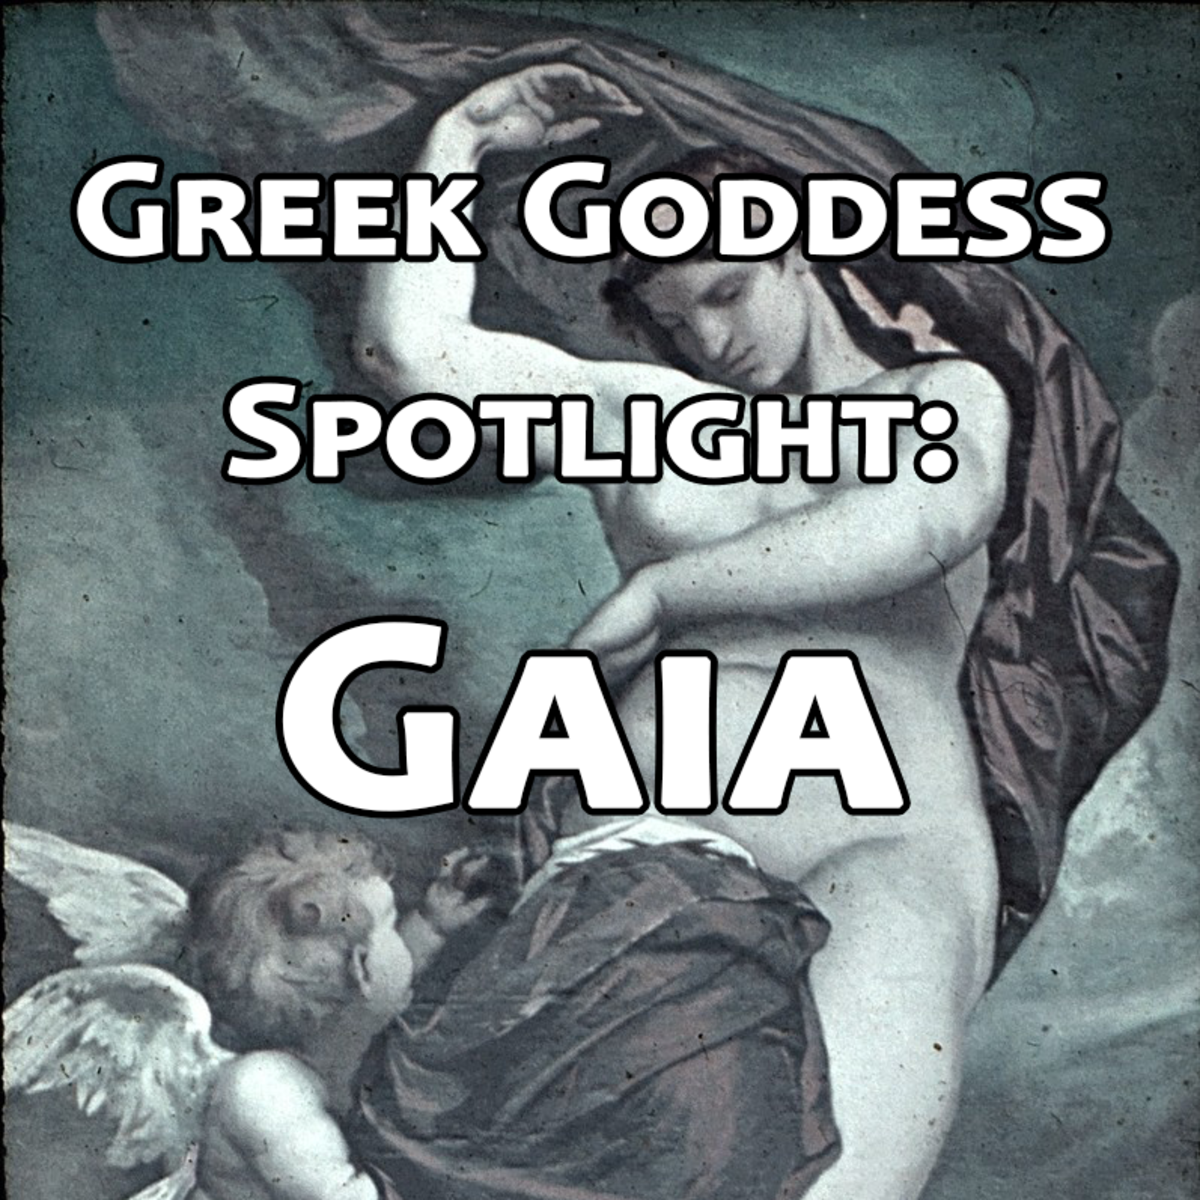 Greek Goddess Spotlight: Who is Gaia?